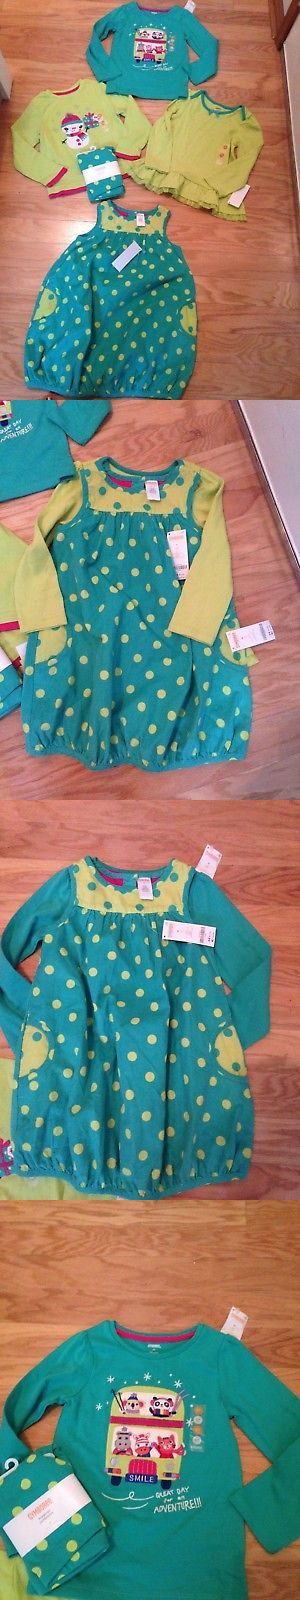 Outfits and Sets 147211: Nwt Gymboree Color Happy Lot Shirts Dress Leggings Teal Blue Lime Green 5T -> BUY IT NOW ONLY: $59.95 on eBay!